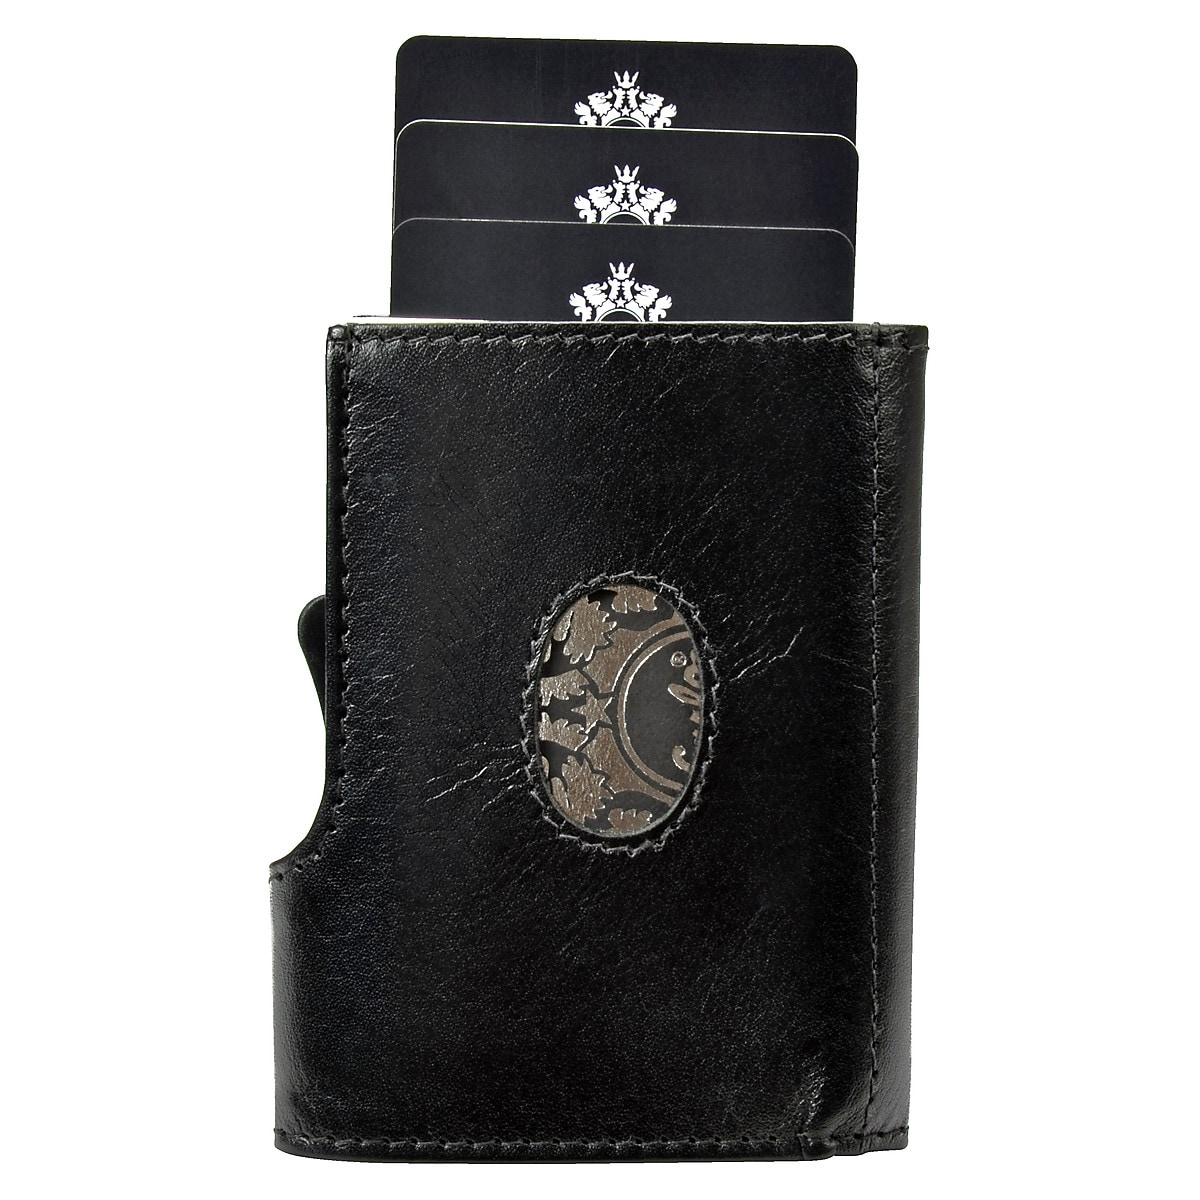 Secure Card Holder